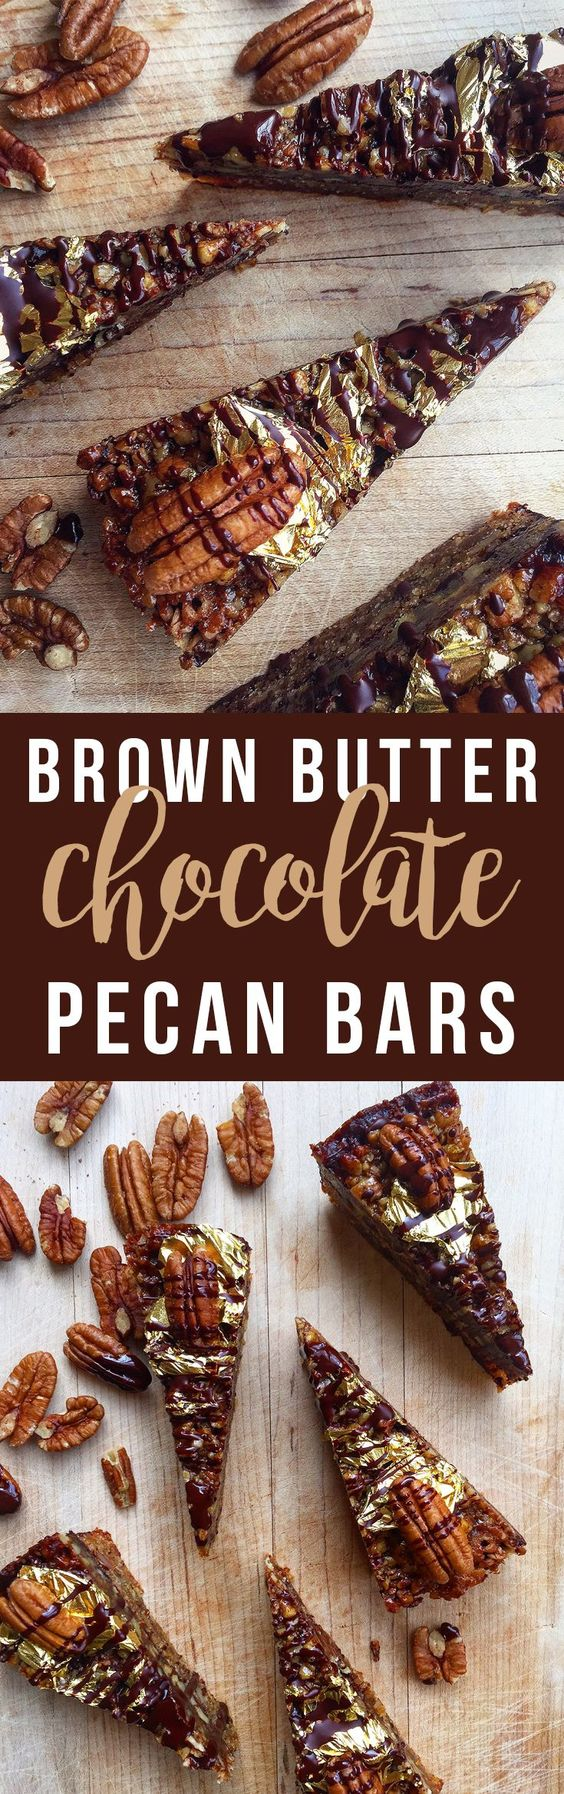 These decadent Brown Butter Chocolate Pecan Bars are richly flavored thanks to an old culinary trick: brown butter. Click to read the recipe...